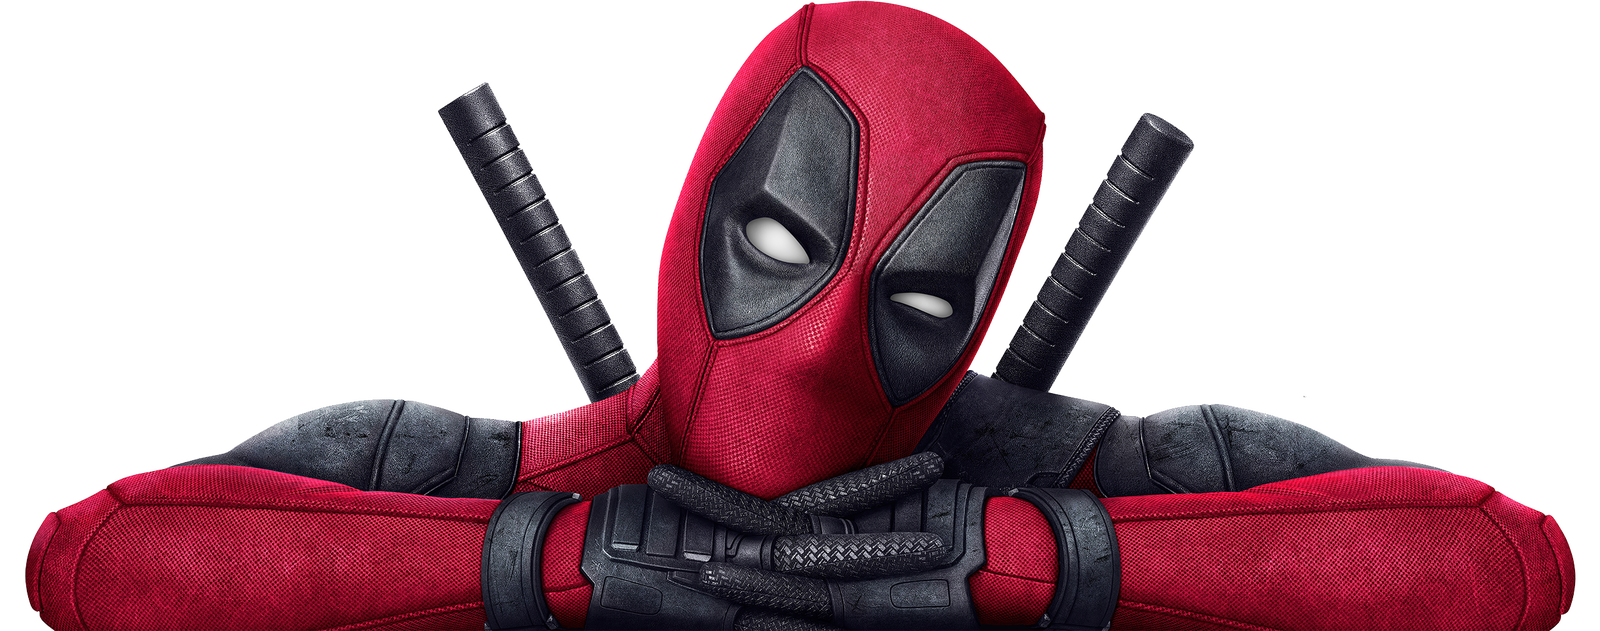 Youtube Deadpool Film Cable HD Image Free PNG PNG Image